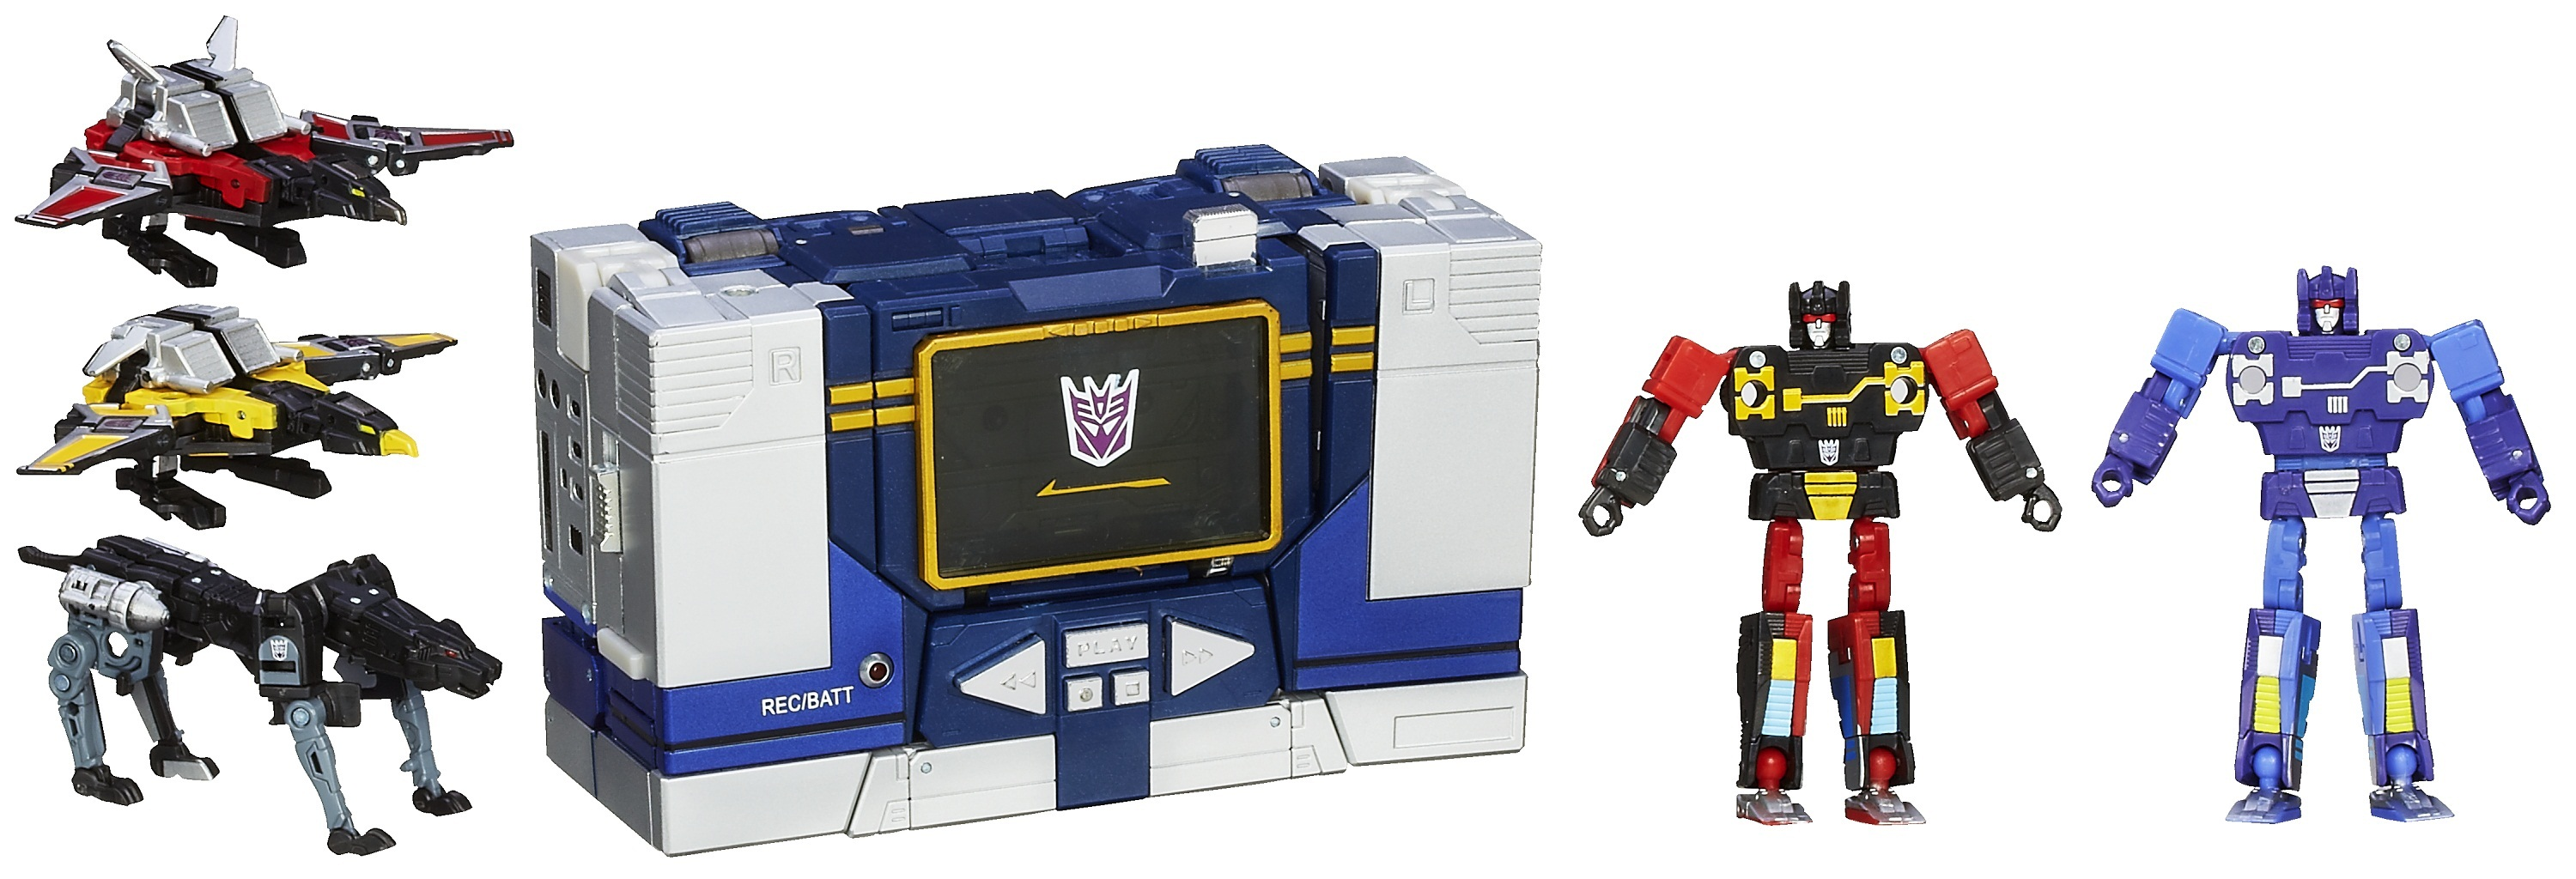 Transformers Masterpiece Soundwave 3